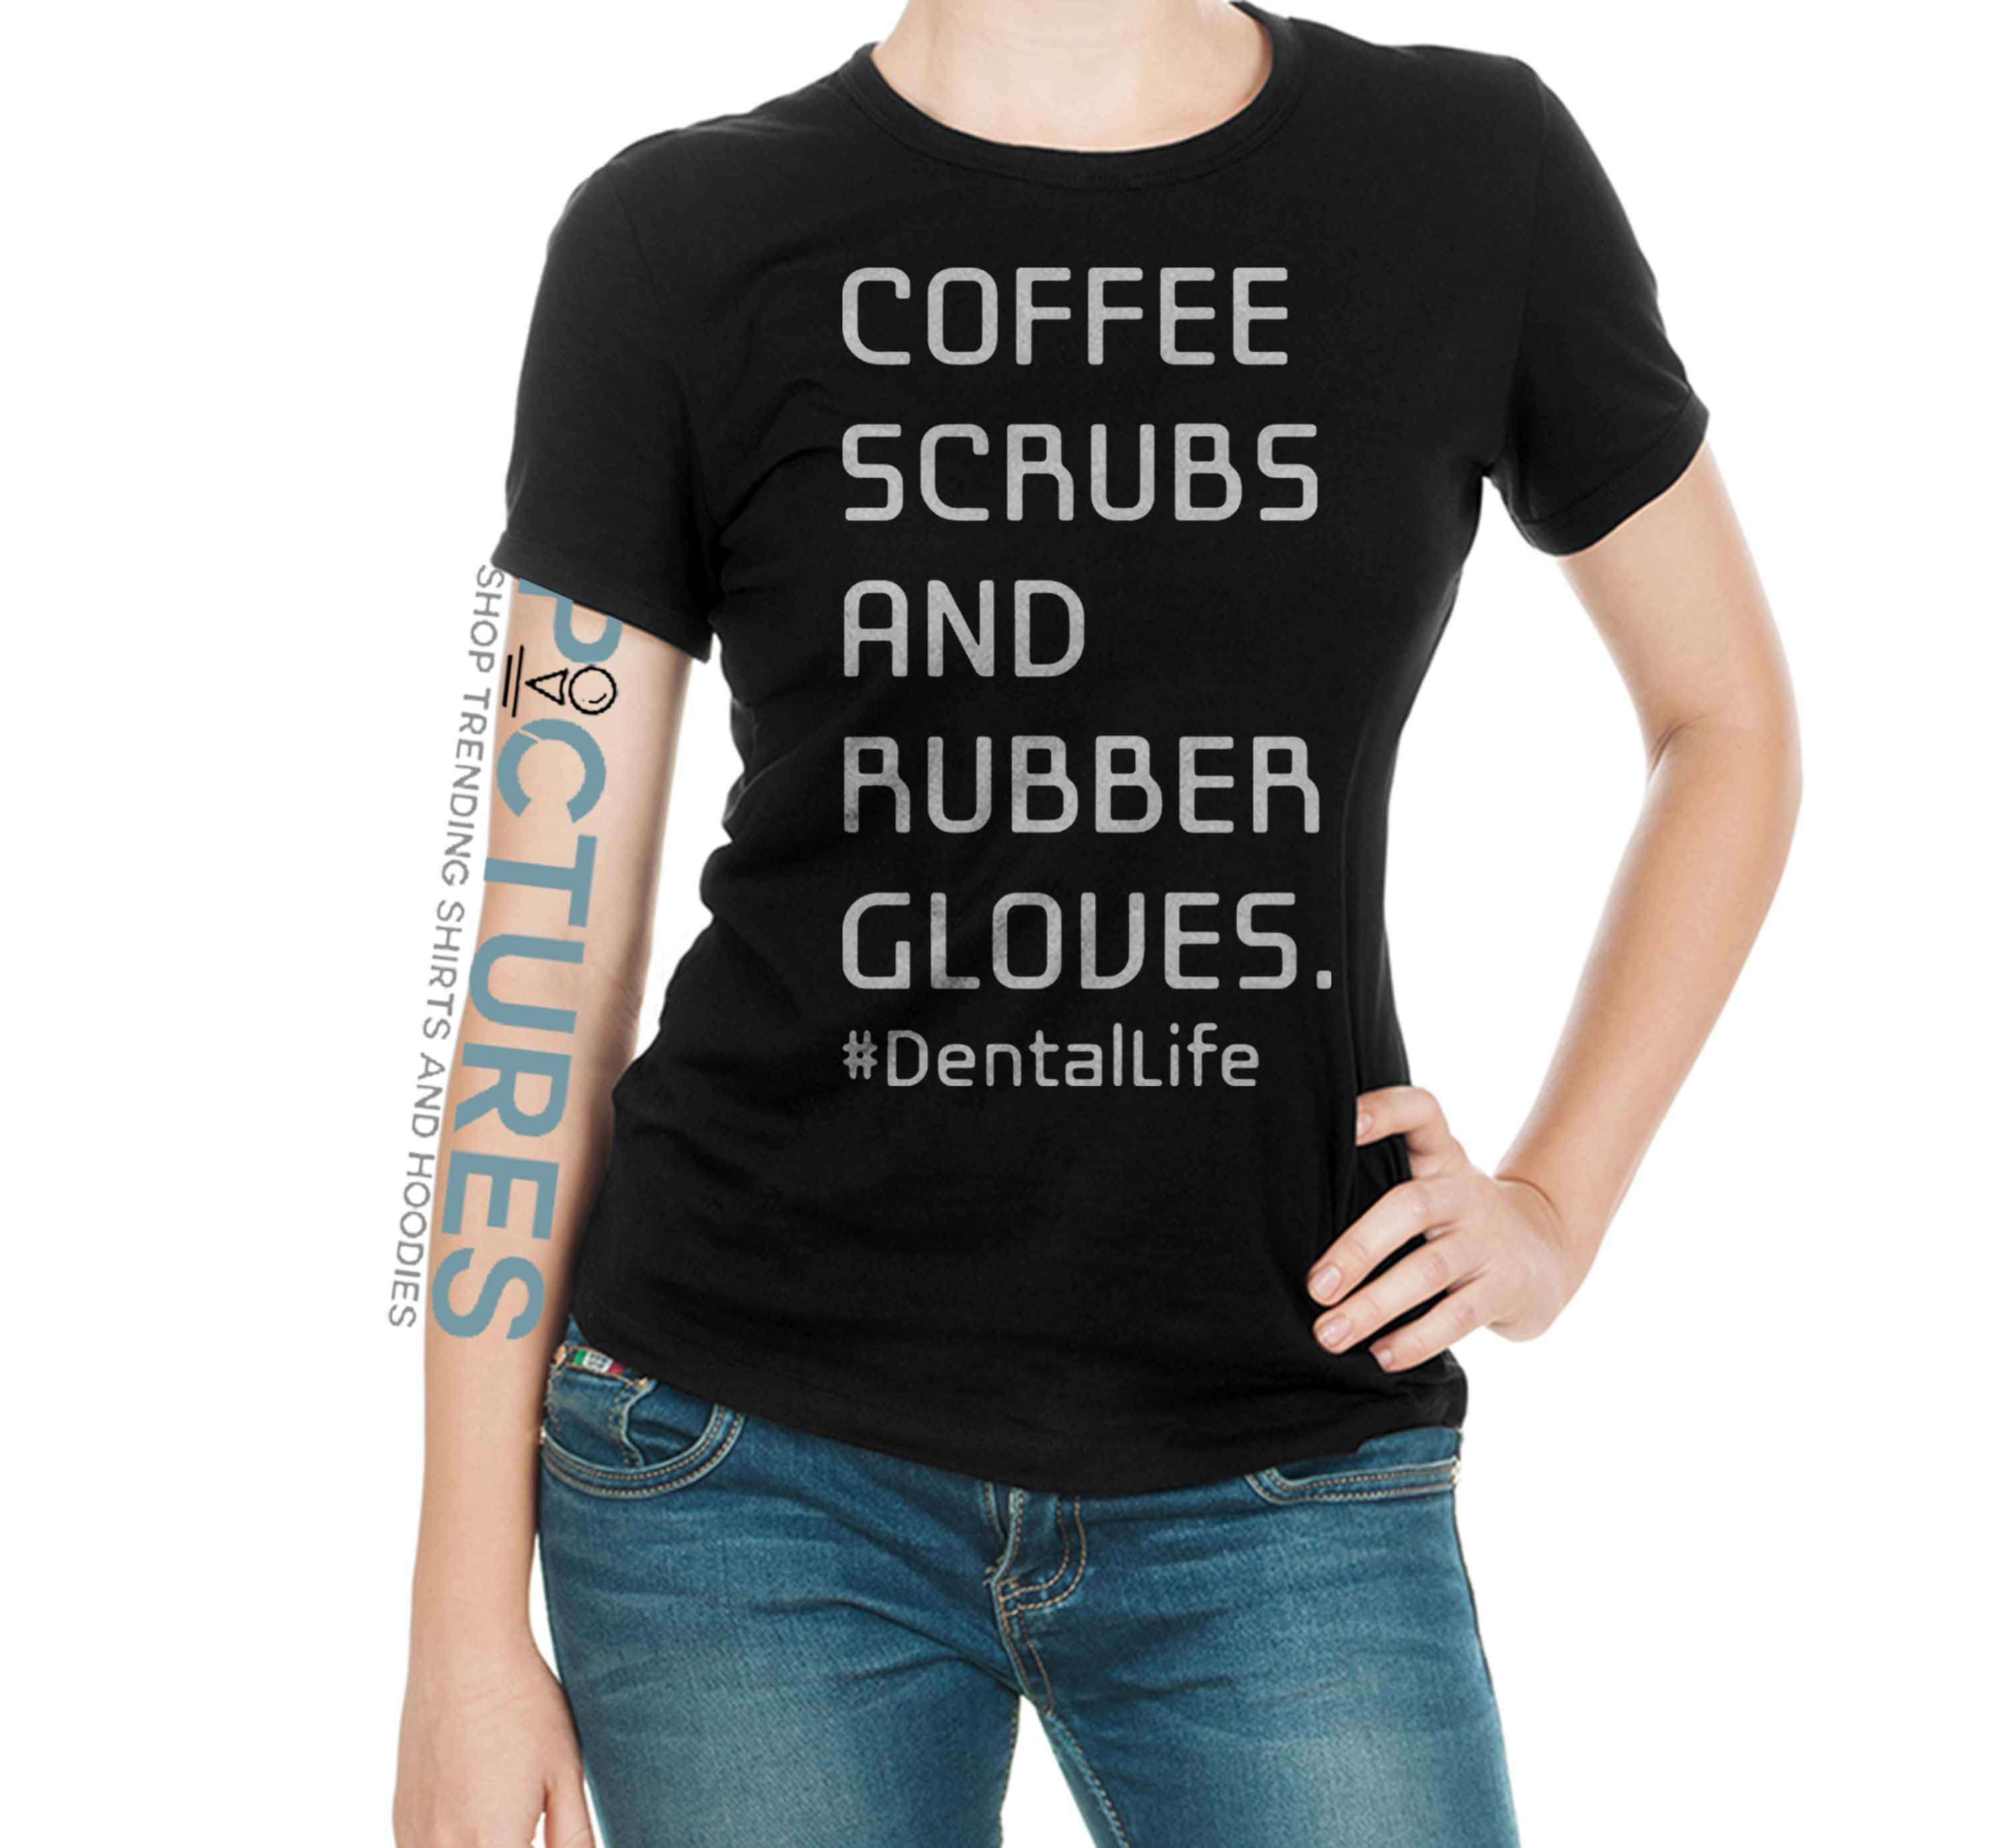 Official Coffee Scrubs and Rubber Gloves dentallife shirt